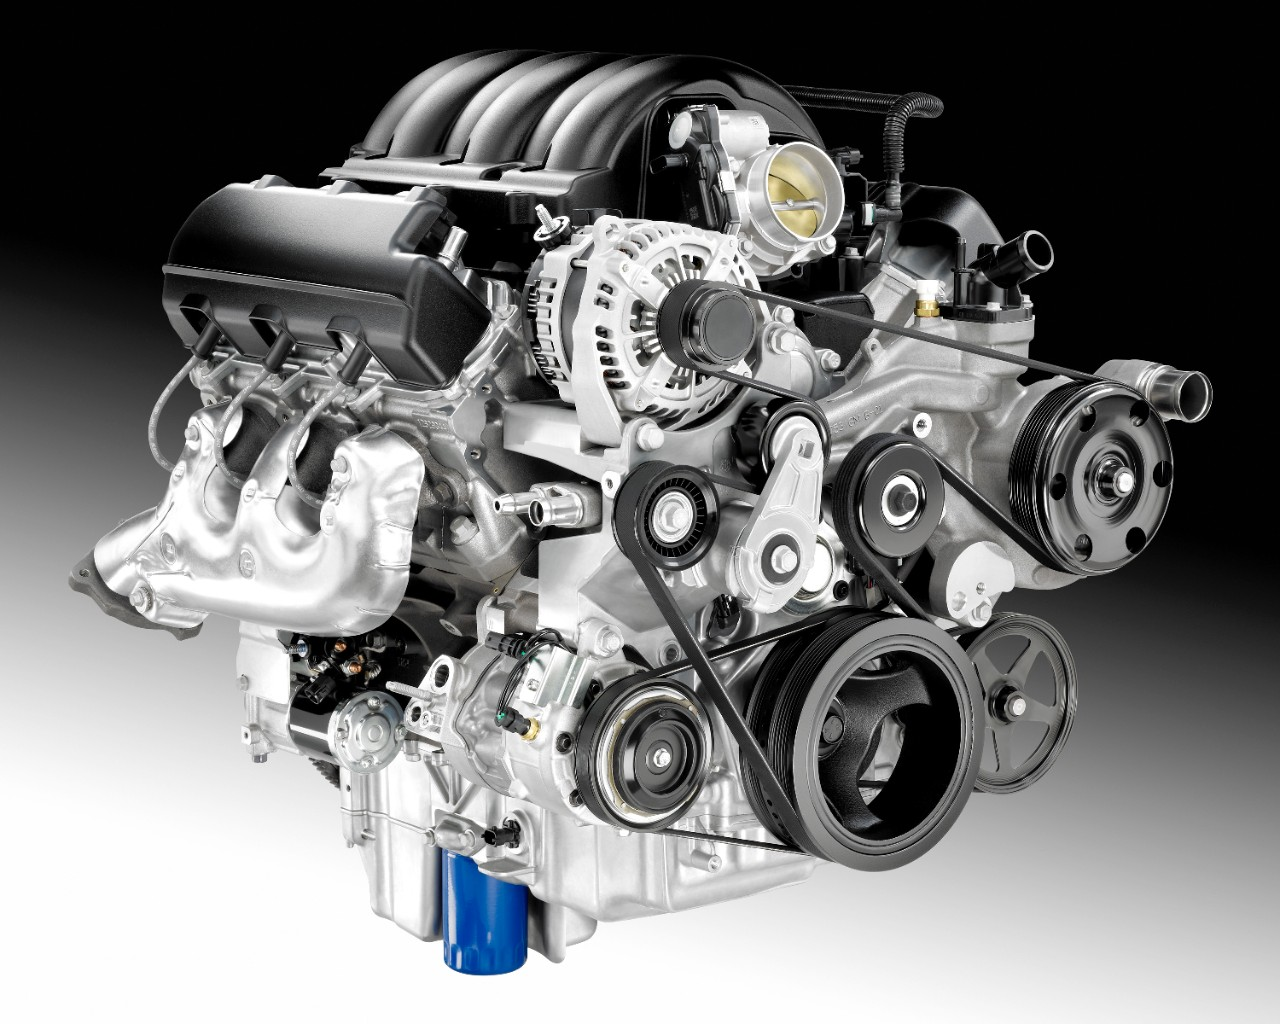 Gm Reveals New Ecotec3 Family Of Engines For Light Duty Trucks 5 7 Engine Diagram Cq5damweb12801280